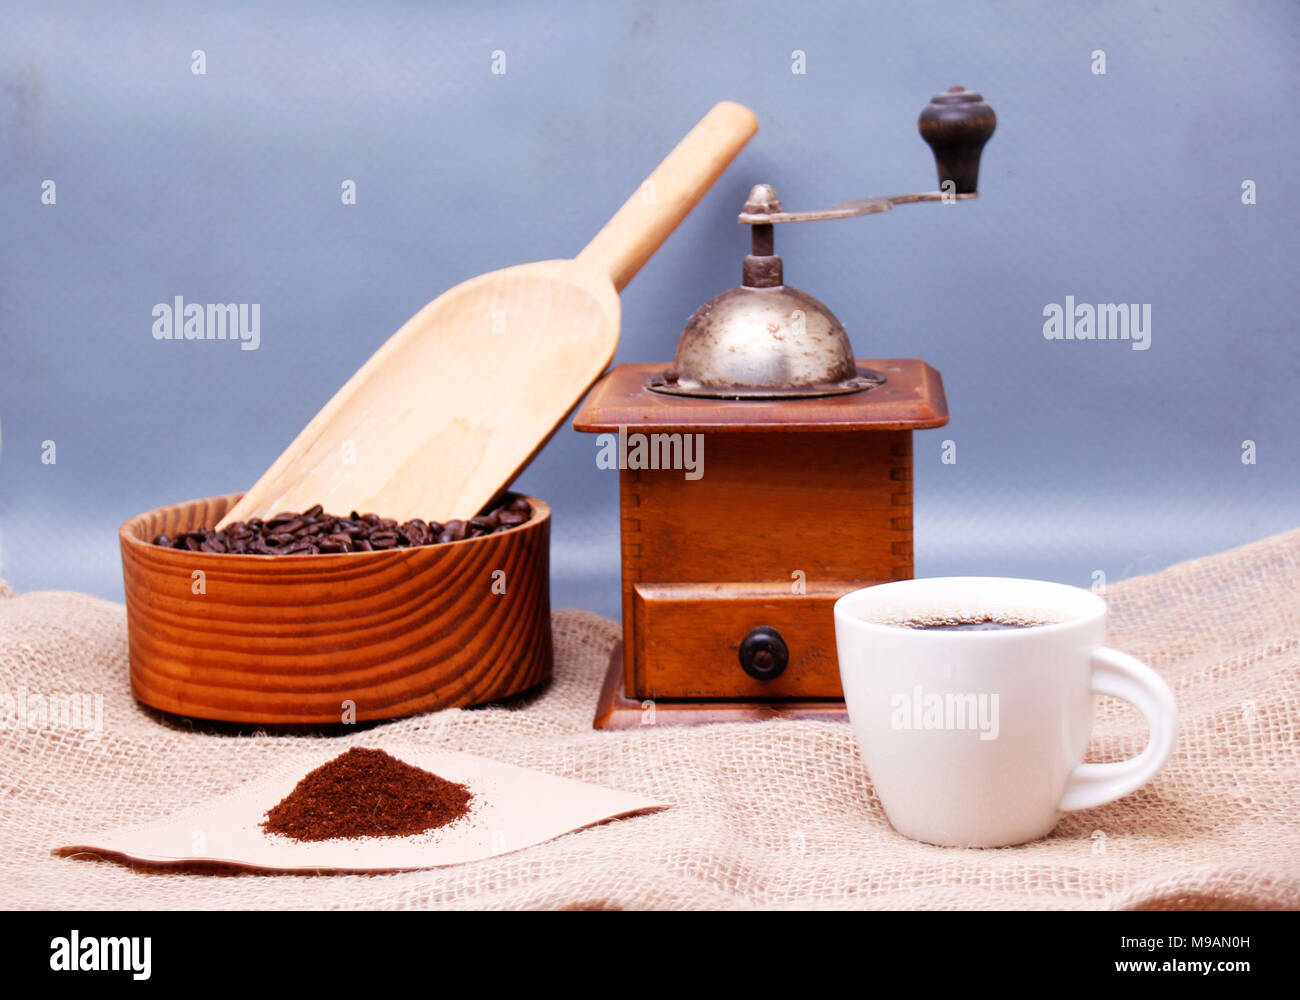 A picture of a cup of coffee, grinder and a coffee filter - Stock Image